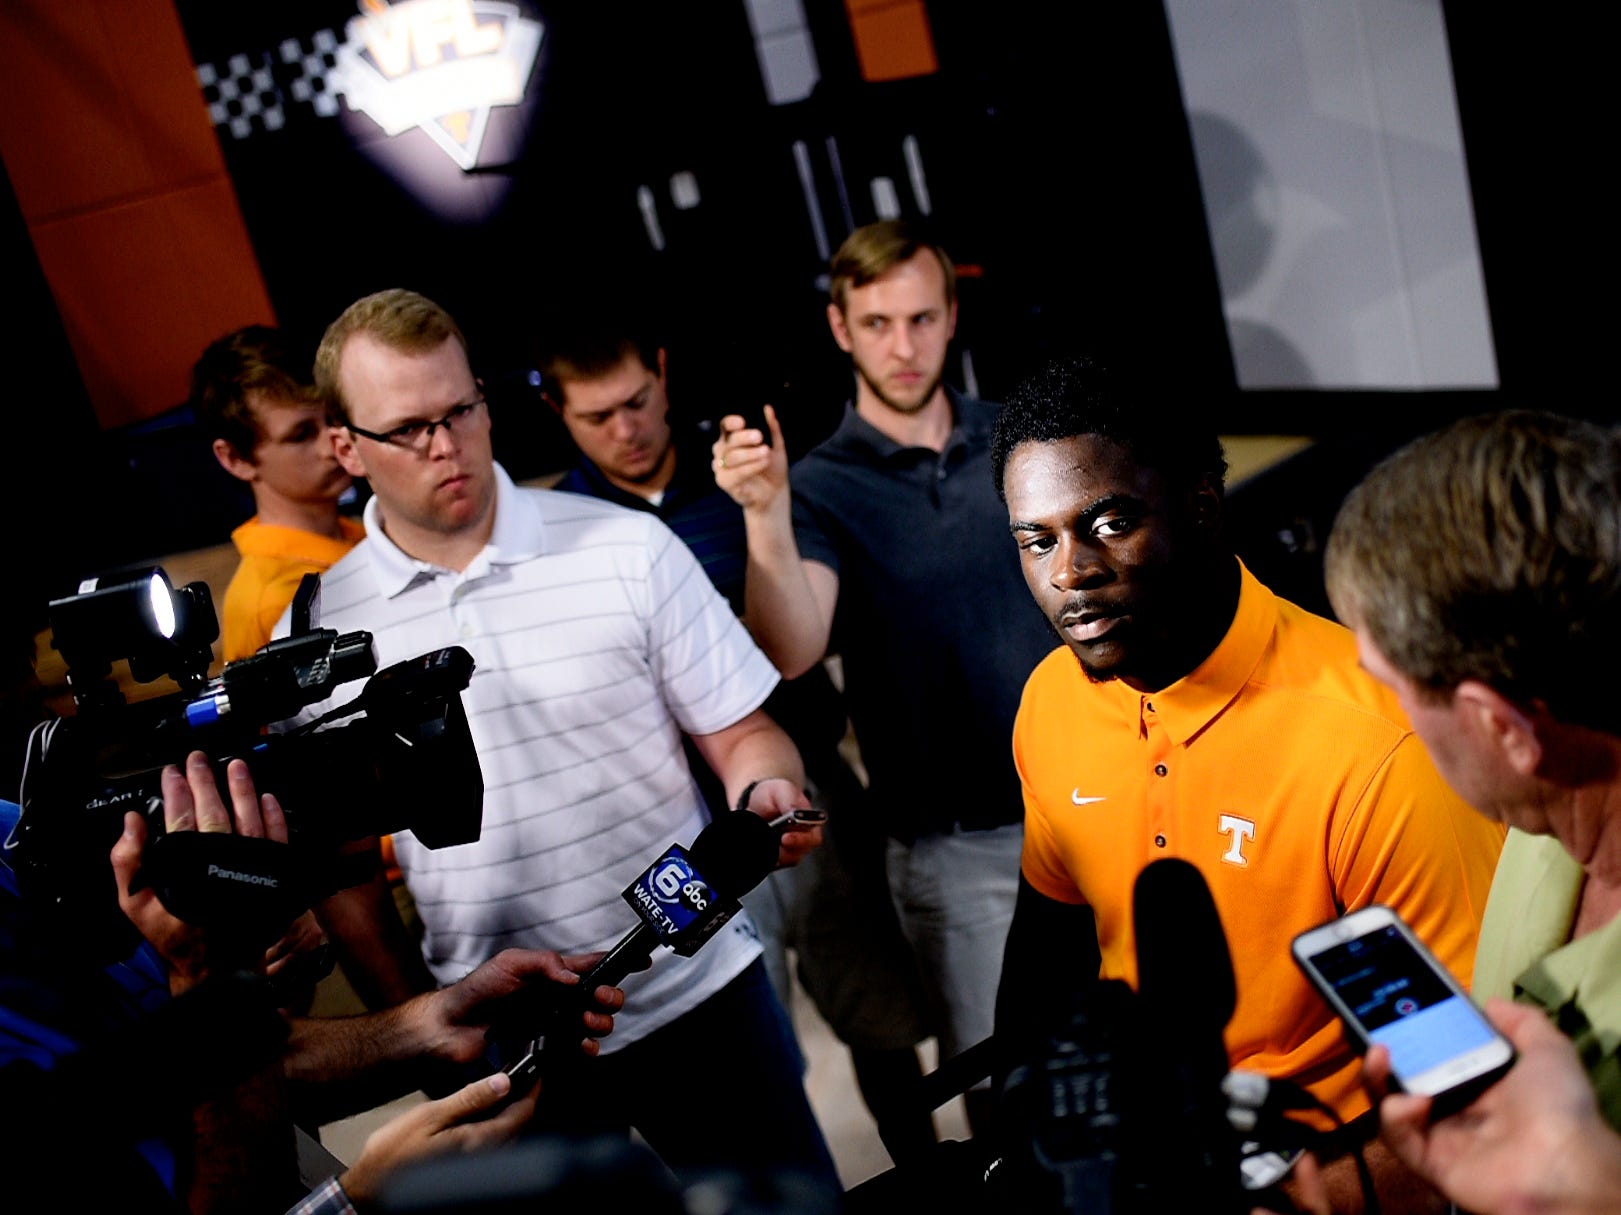 Tennessee linebacker Darrell Taylor (19) speaks during a press conference at the Roy & Lucy Hand Digital Studio in Knoxville, Tennessee on Thursday, August 9, 2018.